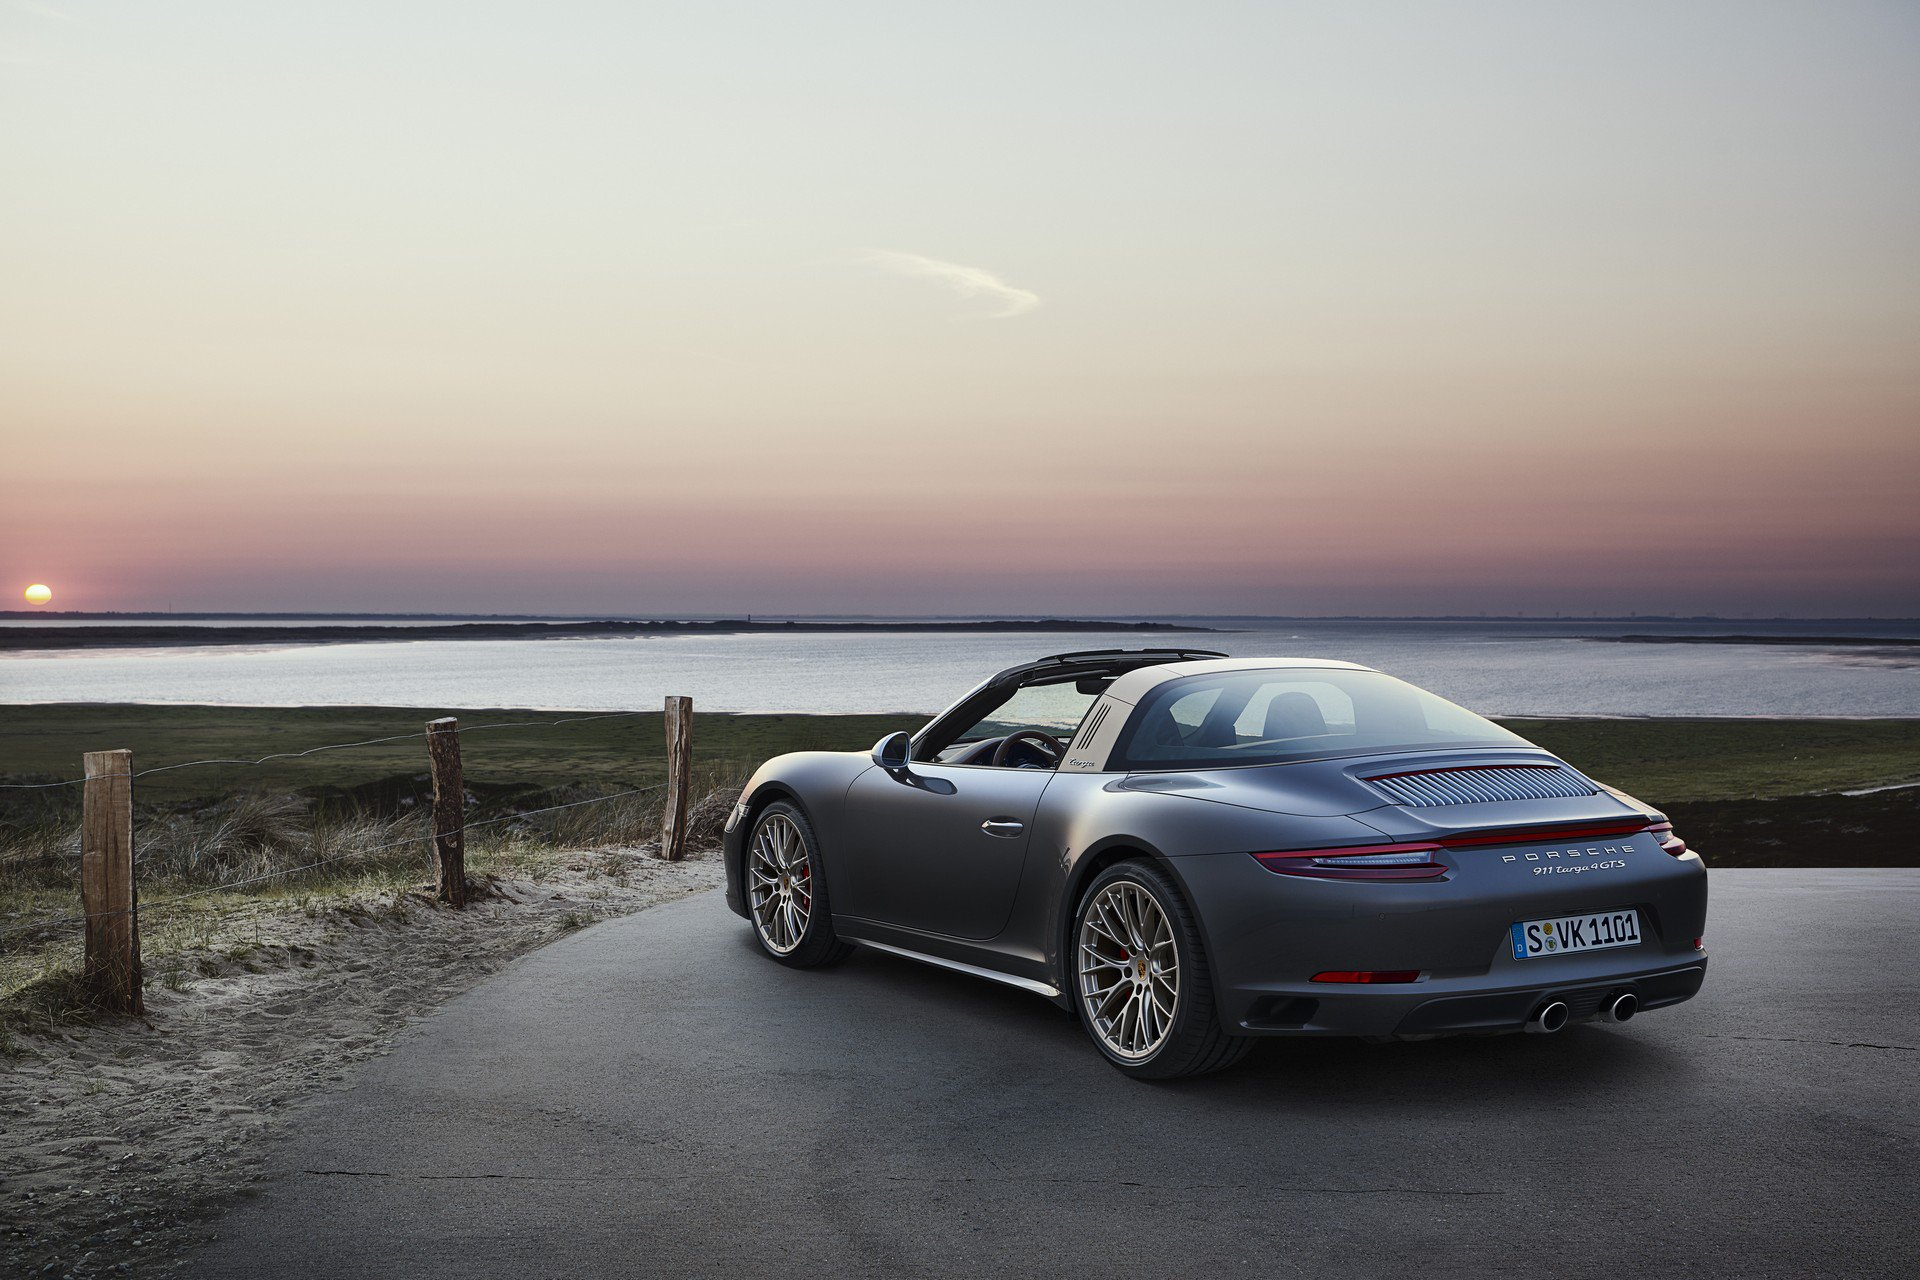 42e5f983-porsche-911-targa-4-gts-exclusive-manufaktur-edition-5